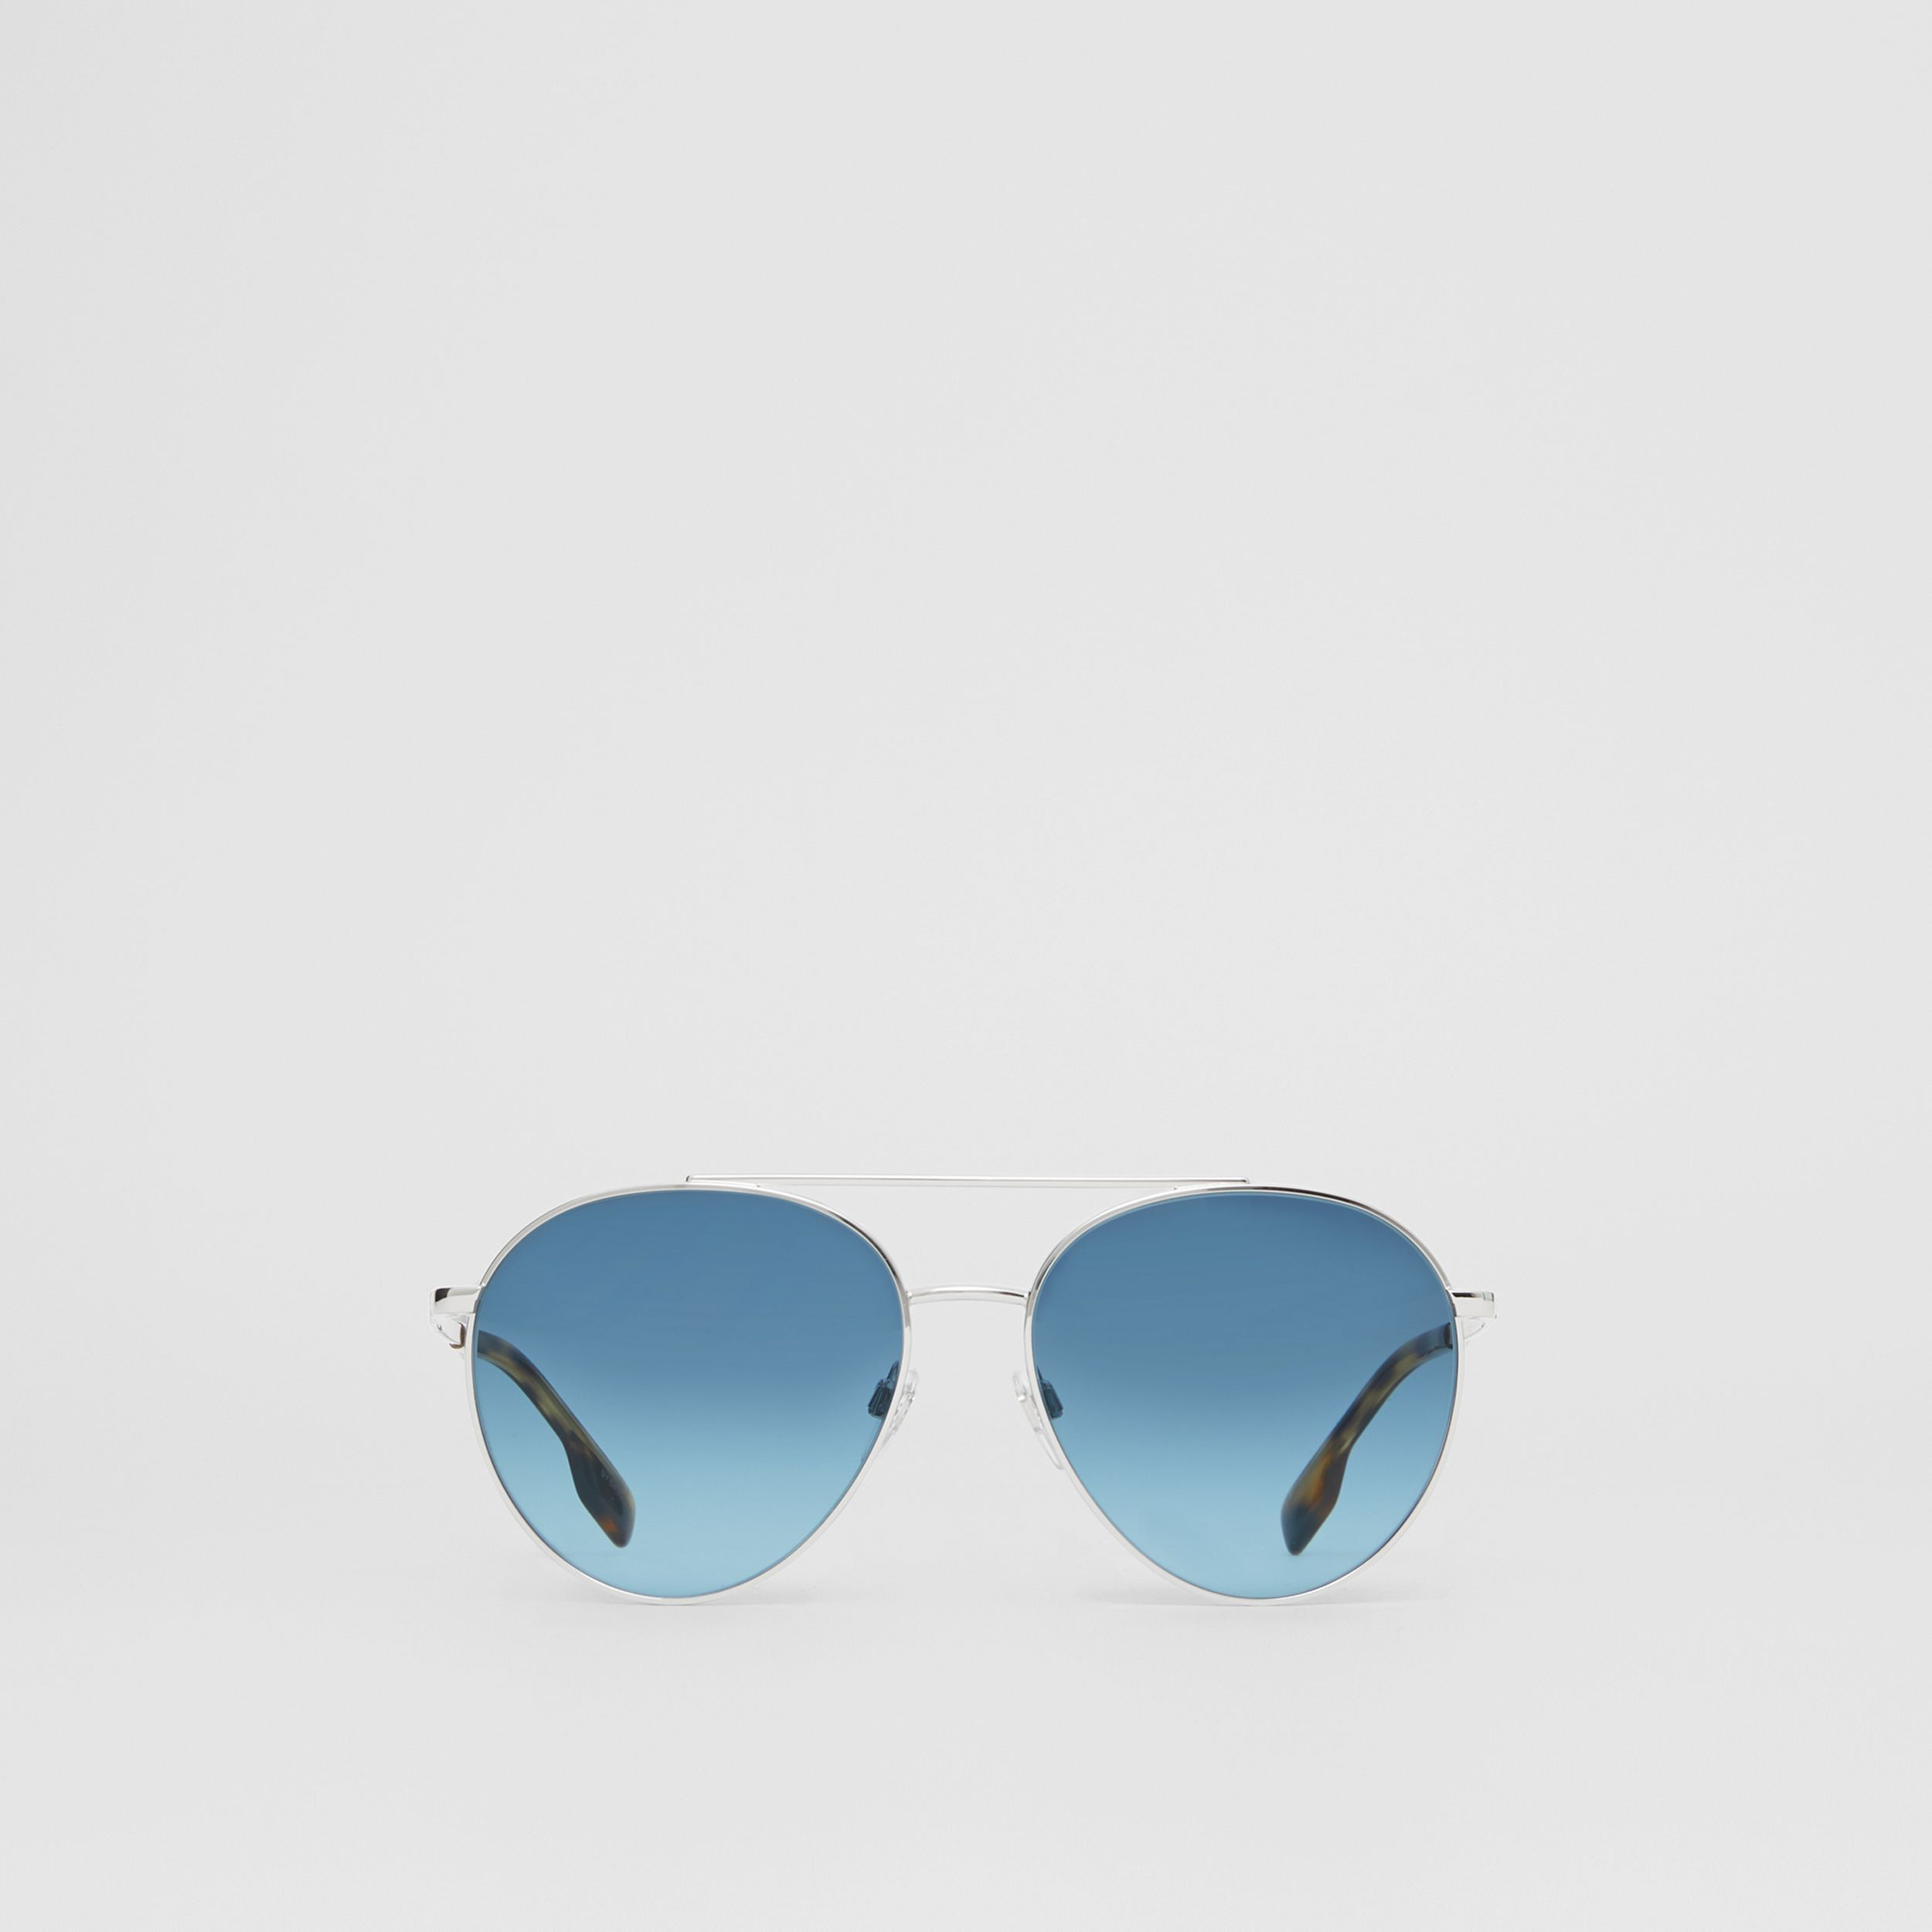 Pilot Sunglasses in Pale Blue - Women | Burberry - 1